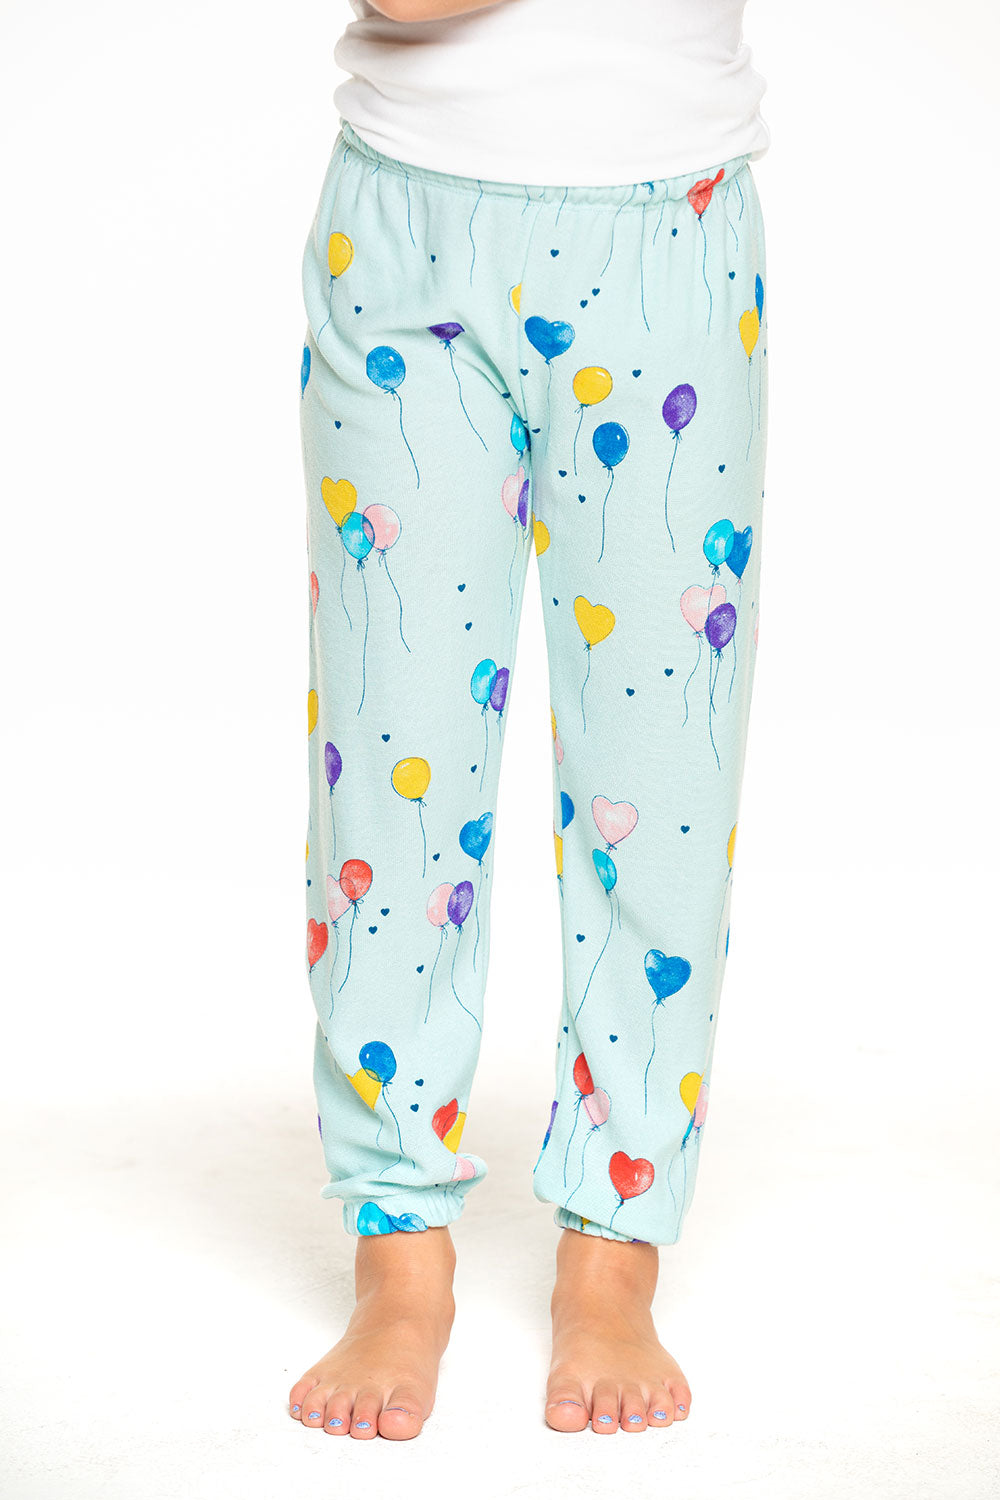 Balloon Pants [product_type] chaserbrand4.myshopify.com